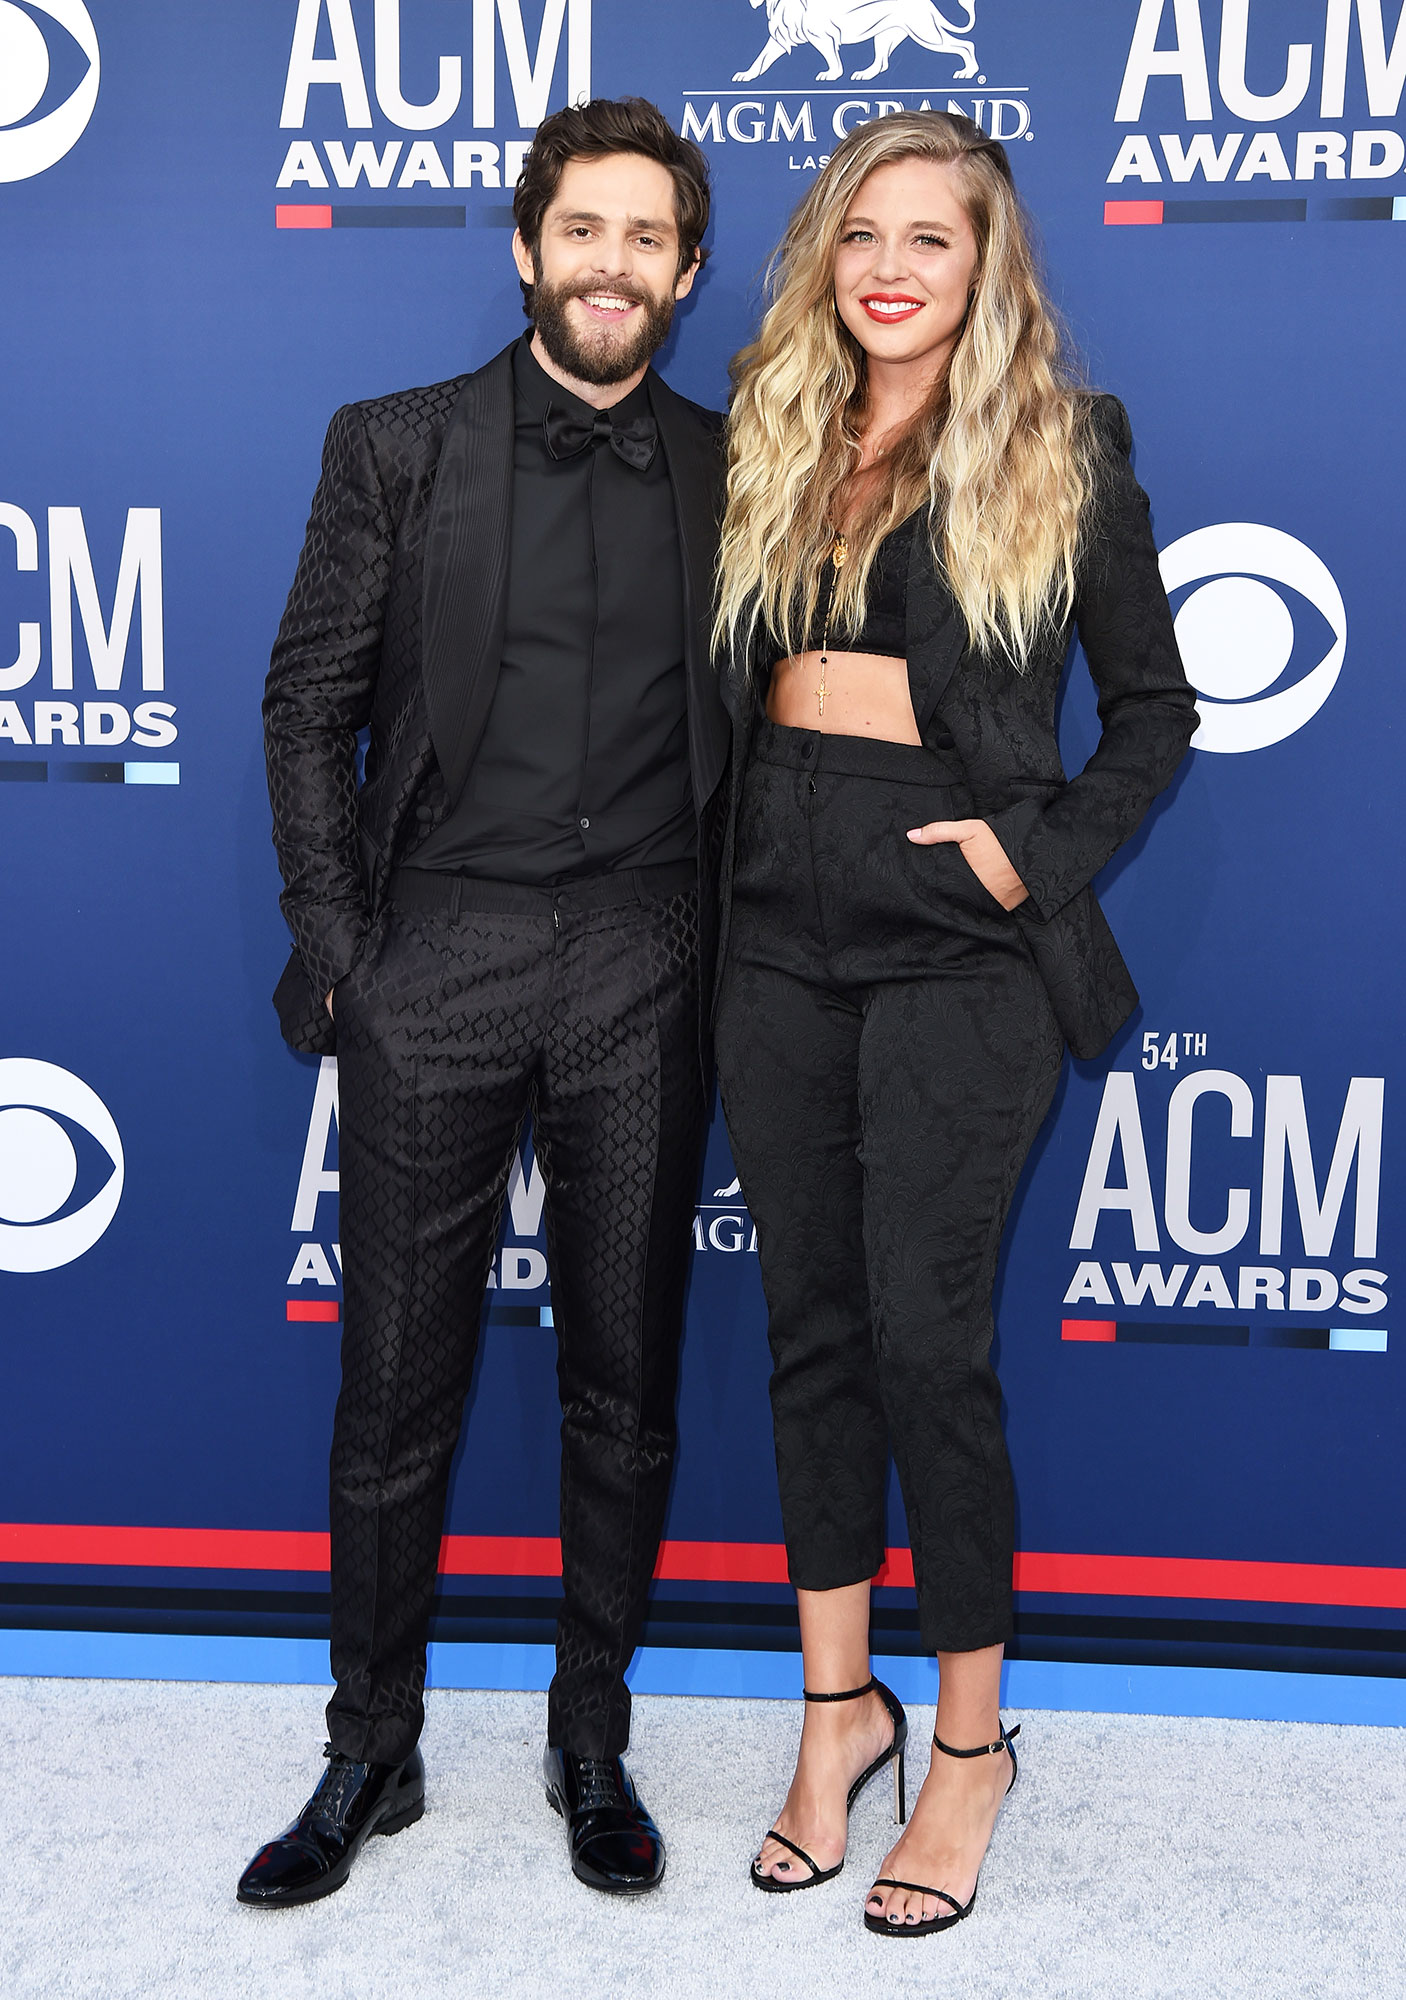 Thomas Rhett and Lauren Akins Smoking Hot Couples Style at the ACMs - One of country music's cutest duos proved that the couple that dresses together strays together in Dolce and Gabbana.